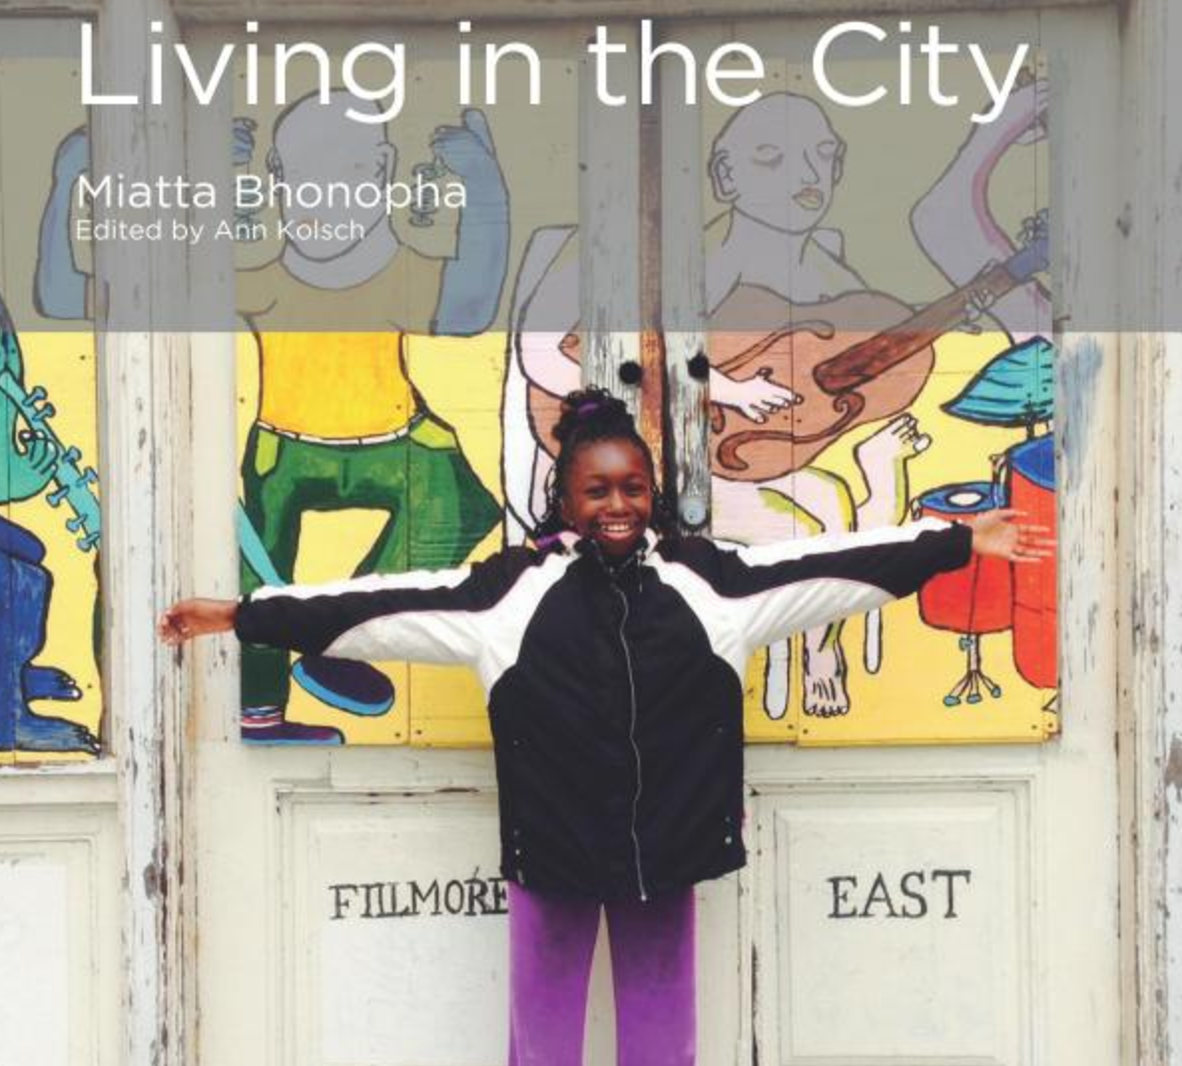 Living in the City   Miatta Bhonopha invites you on a tour of her neighborhood. Learn why she loves Living in the City, and how to become a skilled reader and writer too.   Buy this book.